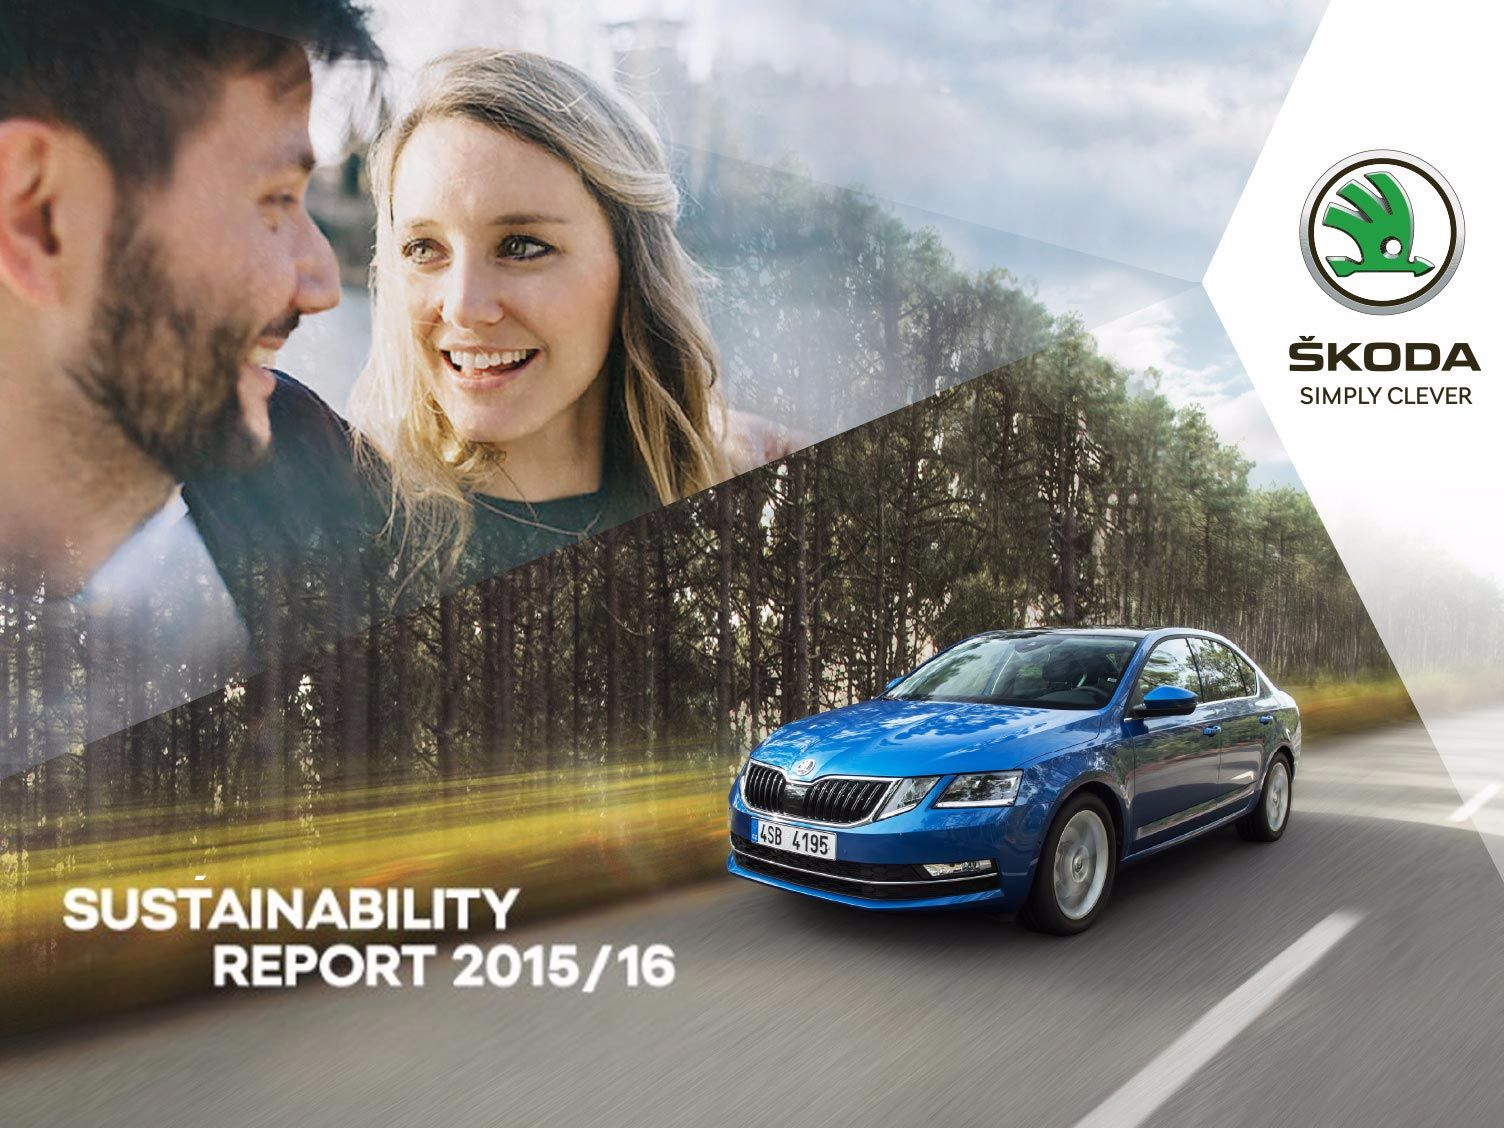 ŠKODA impresses with exemplary environmental protection